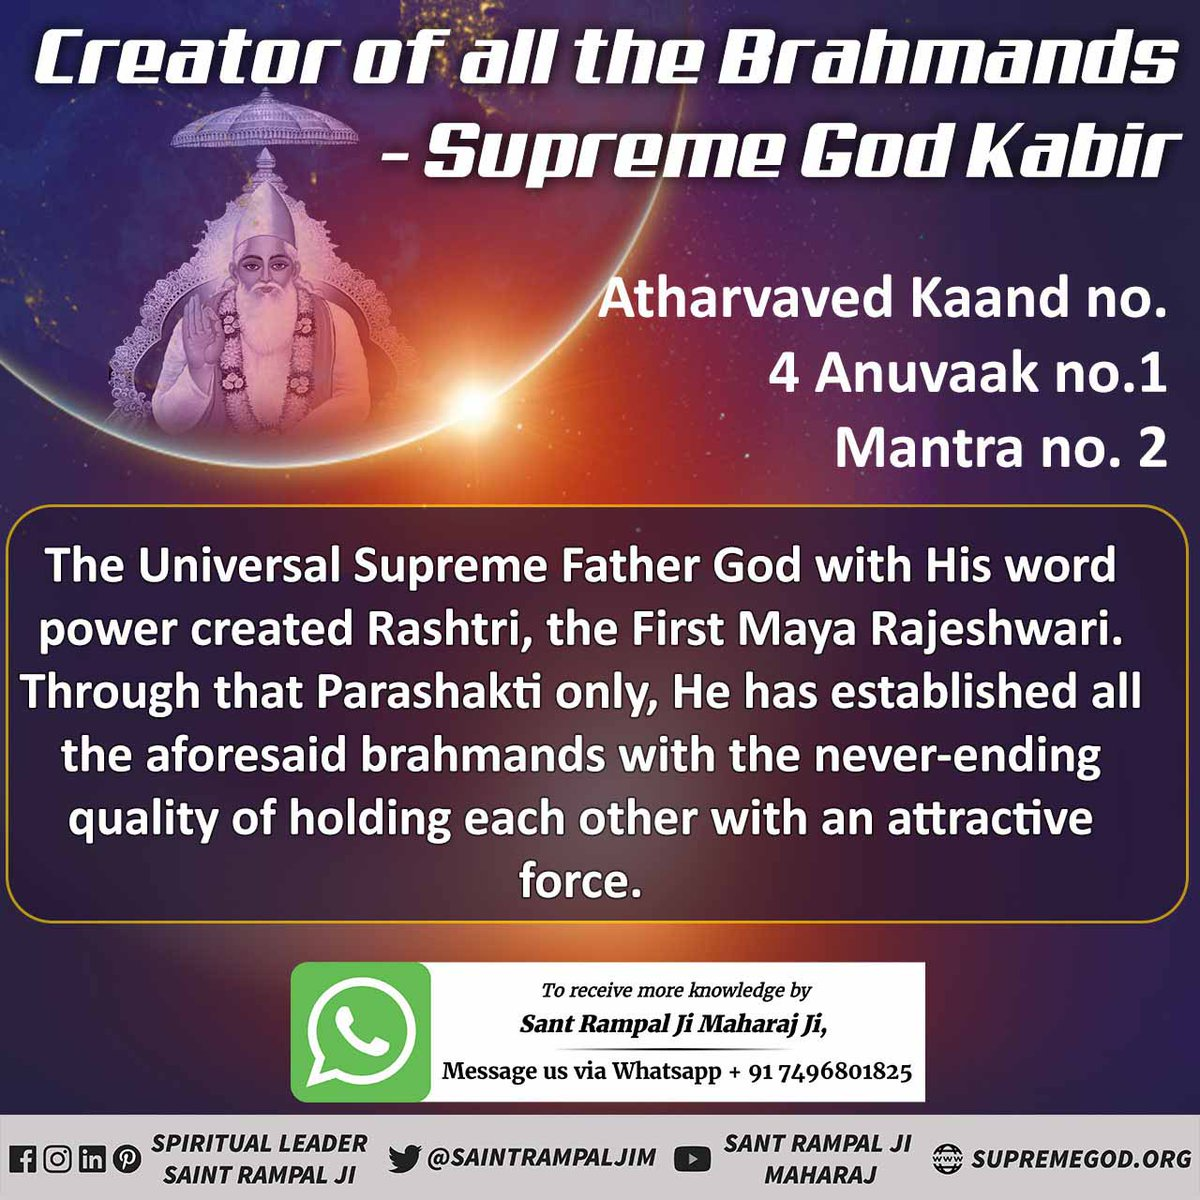 #GodMorningSunday God Kabir is the bestower of happiness. He alone is worthy of being worshipped. The world is milsled by Kaal/Satan. Only a true Guru can provide a true way to worship God Kabir.#SupremeGodKabir #SundayThoughts